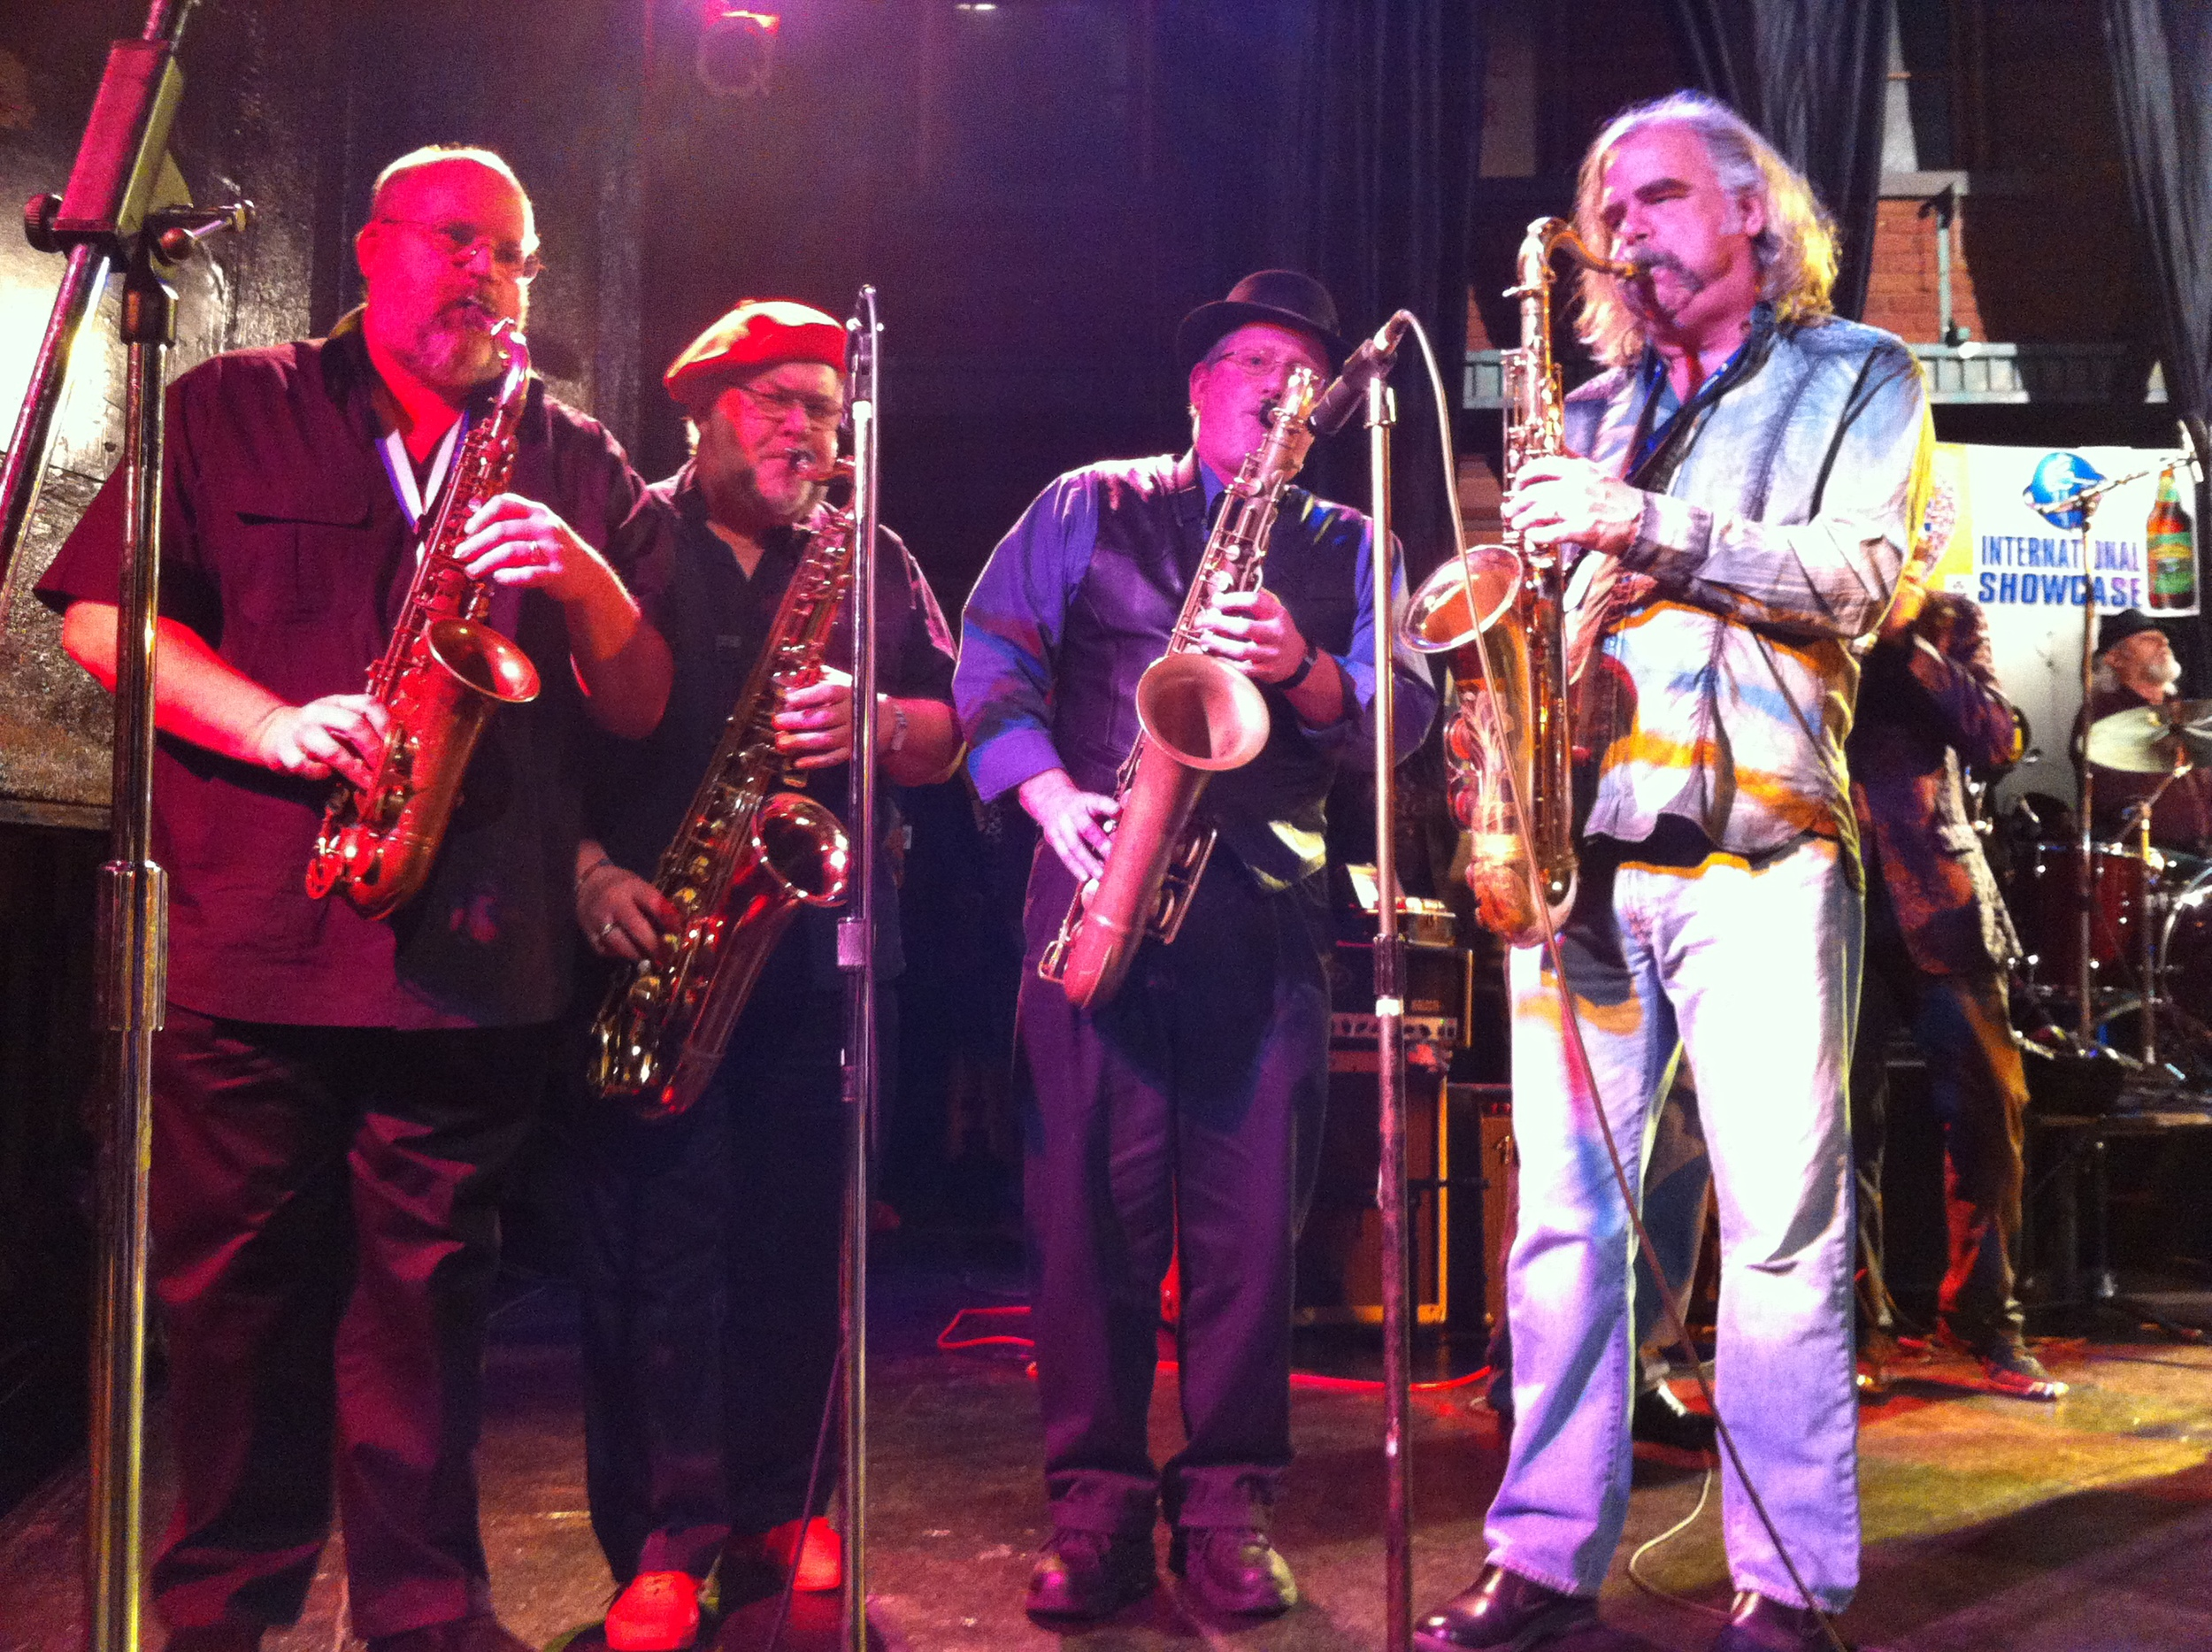 Mike Clark (far right) with some of his new best friends jamming at IBC 2014.